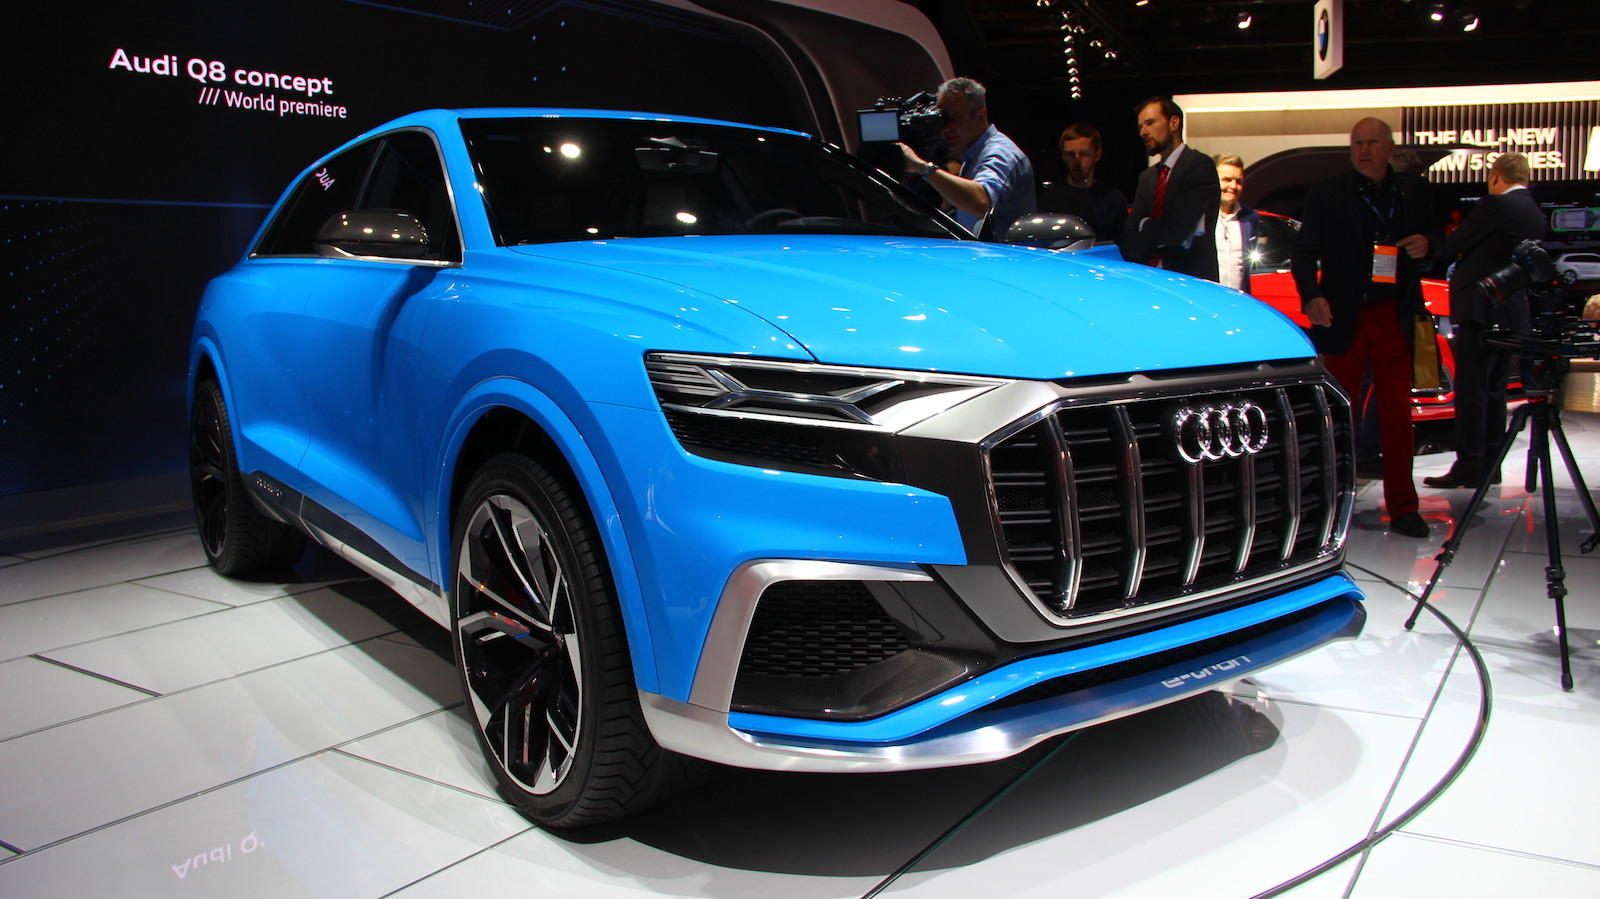 Audi Q8 Concept Jumps On The Coupe Suv Bandwagon